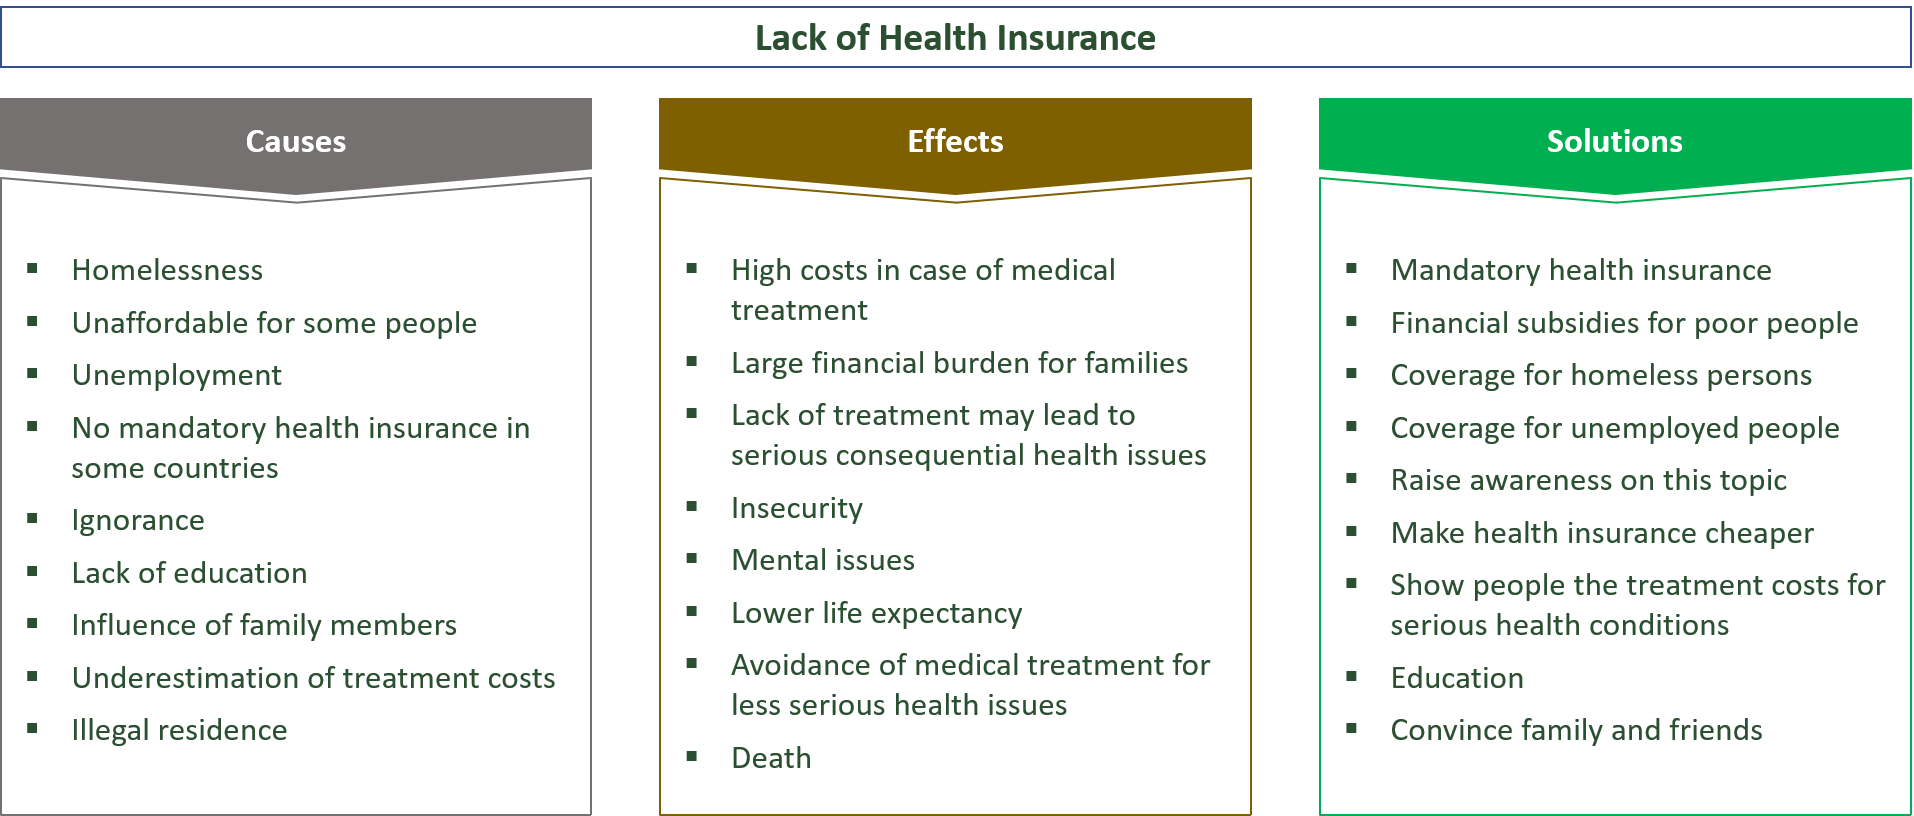 the causes, effects and solutions for a lack in health insurance